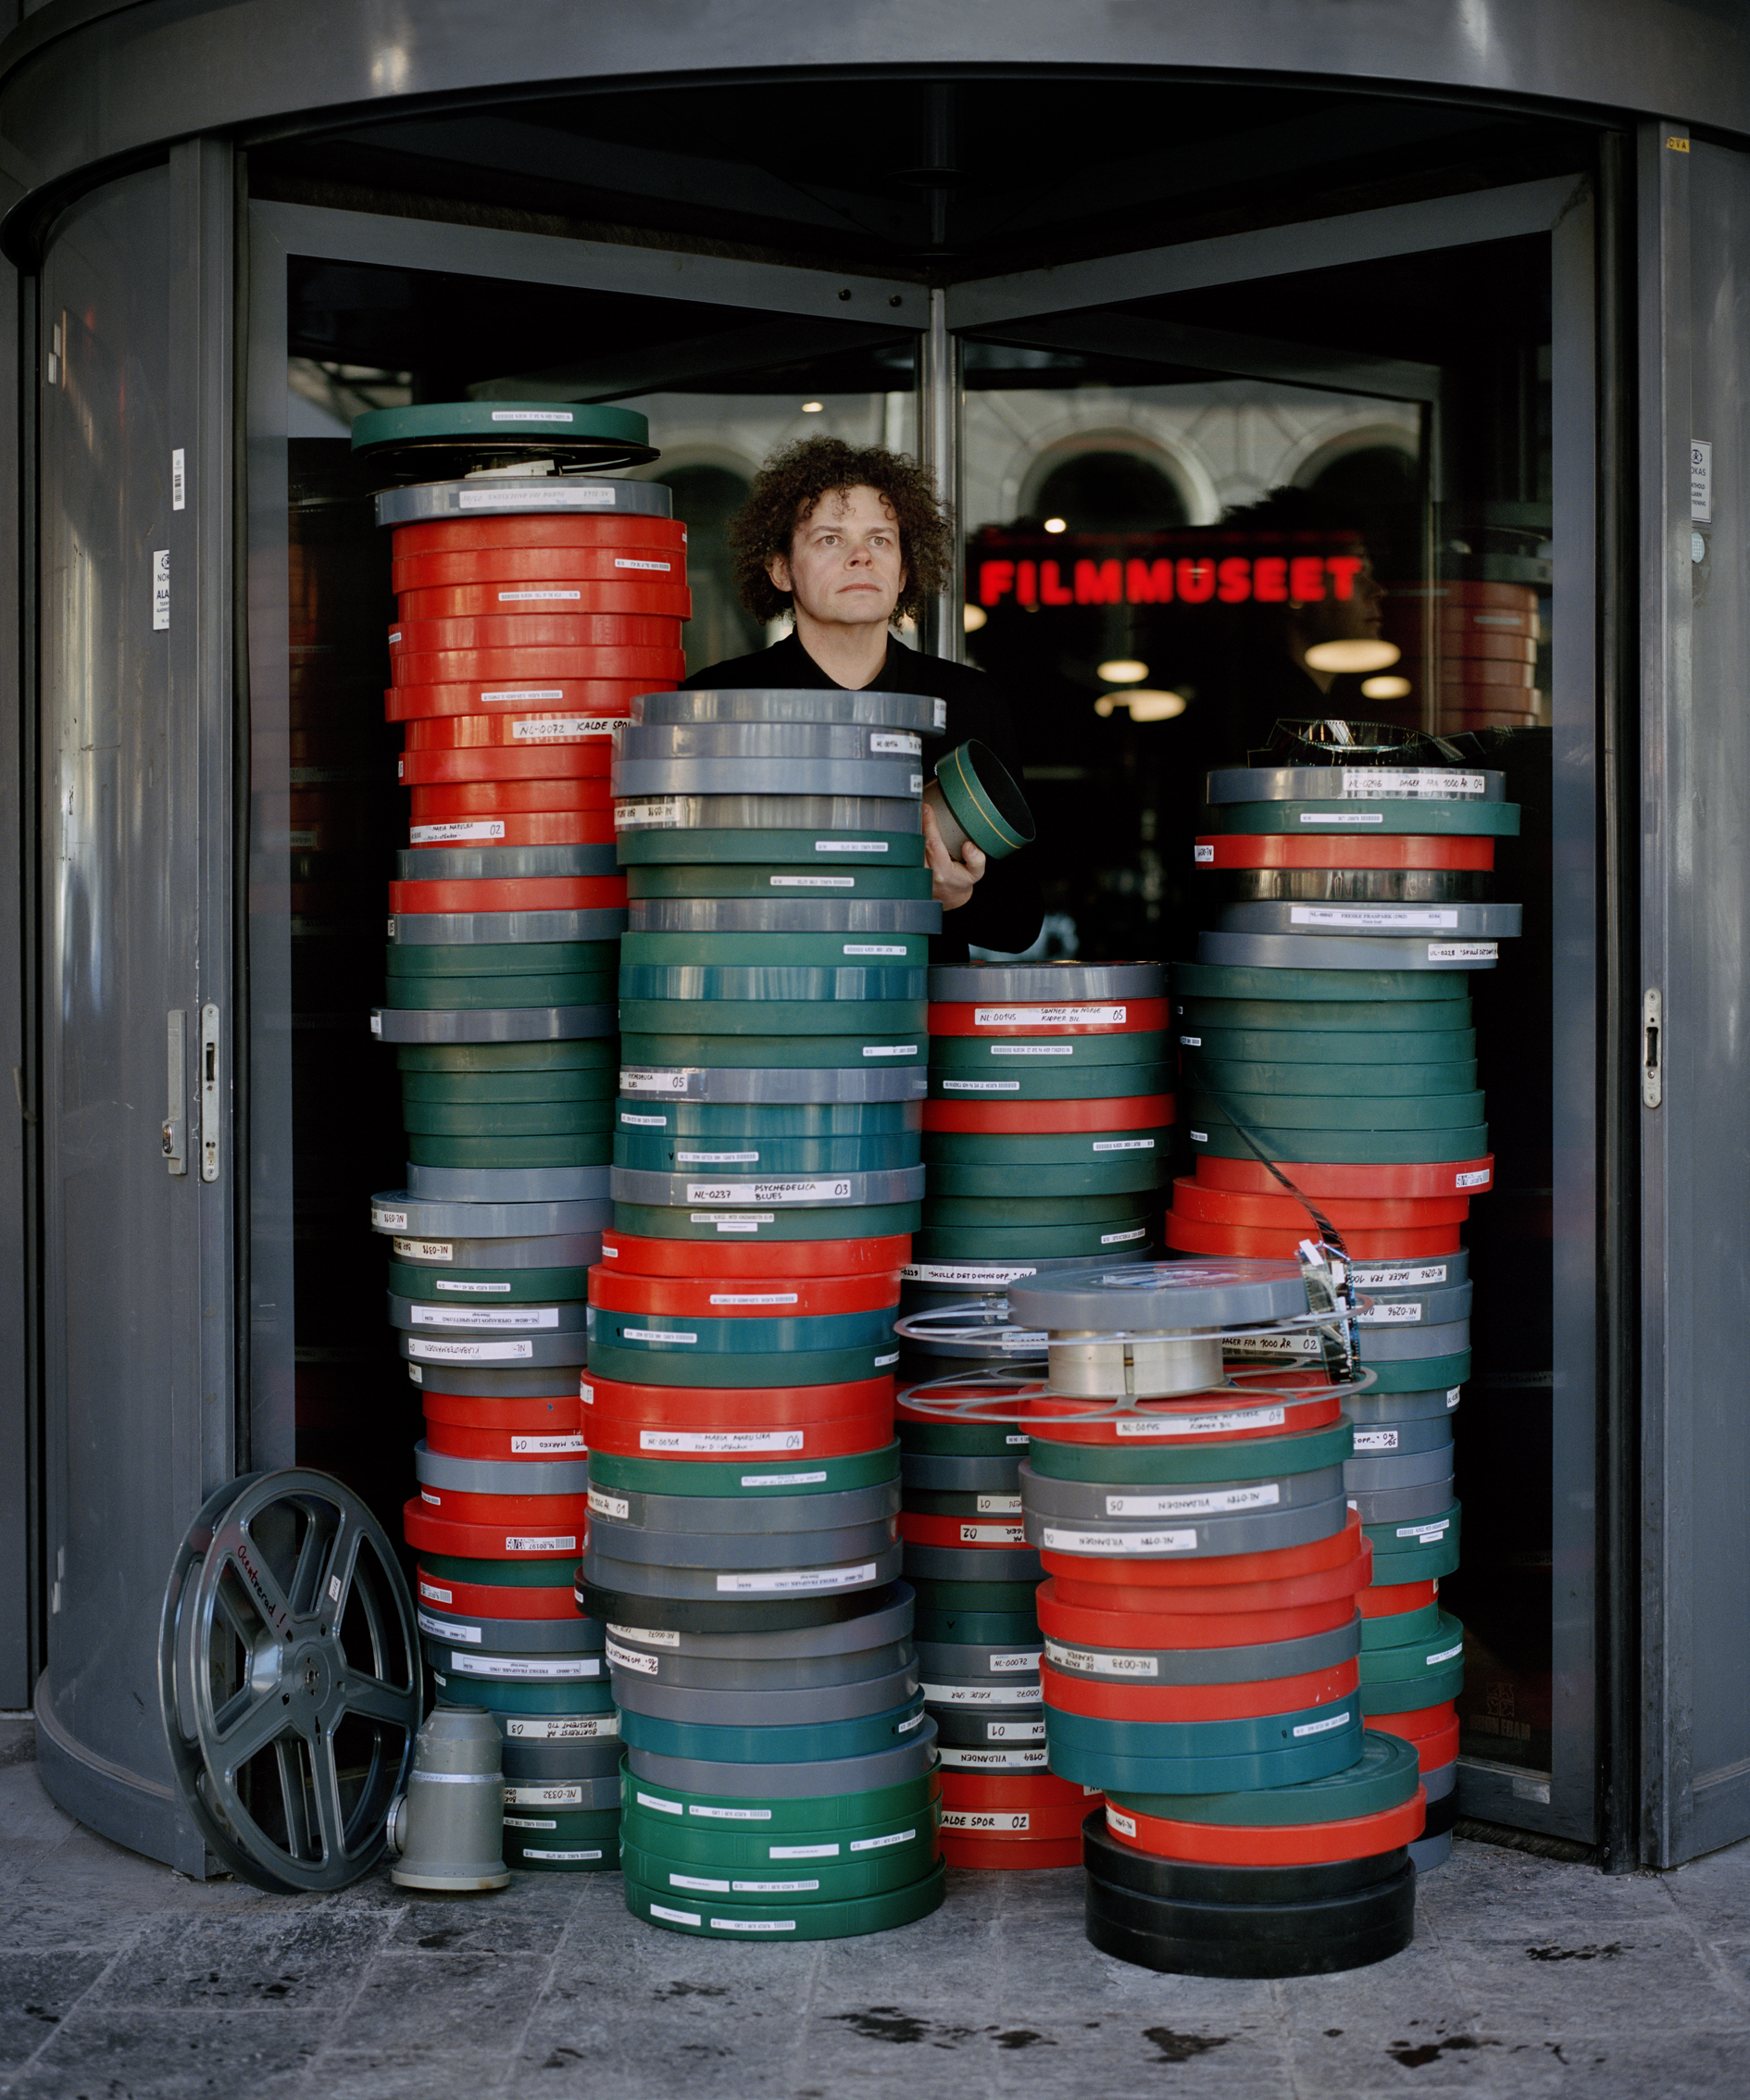 Jan_09_Cinemateket.jpg